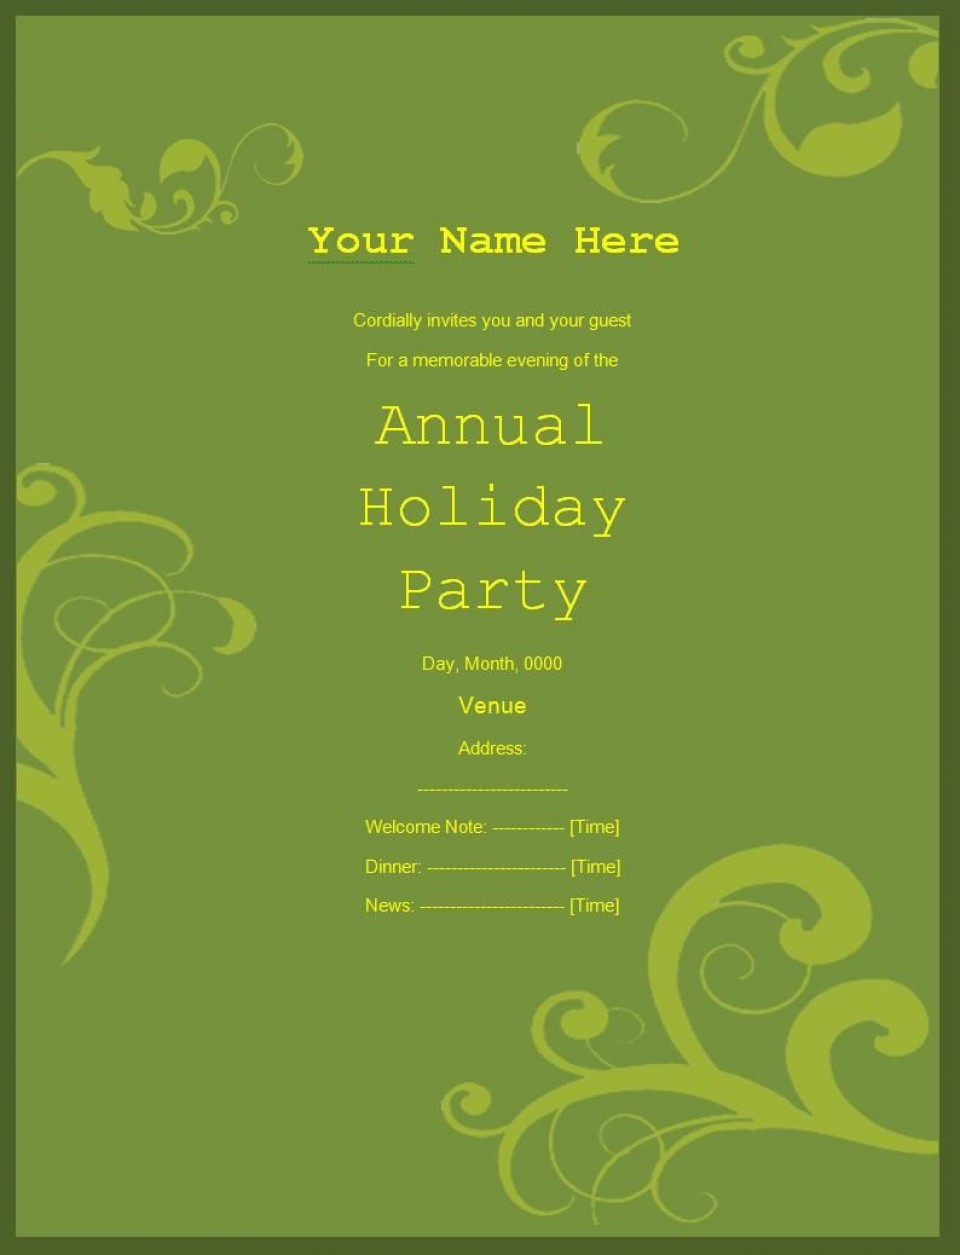 009 Shocking Retirement Party Invite Template Word Free Example 960